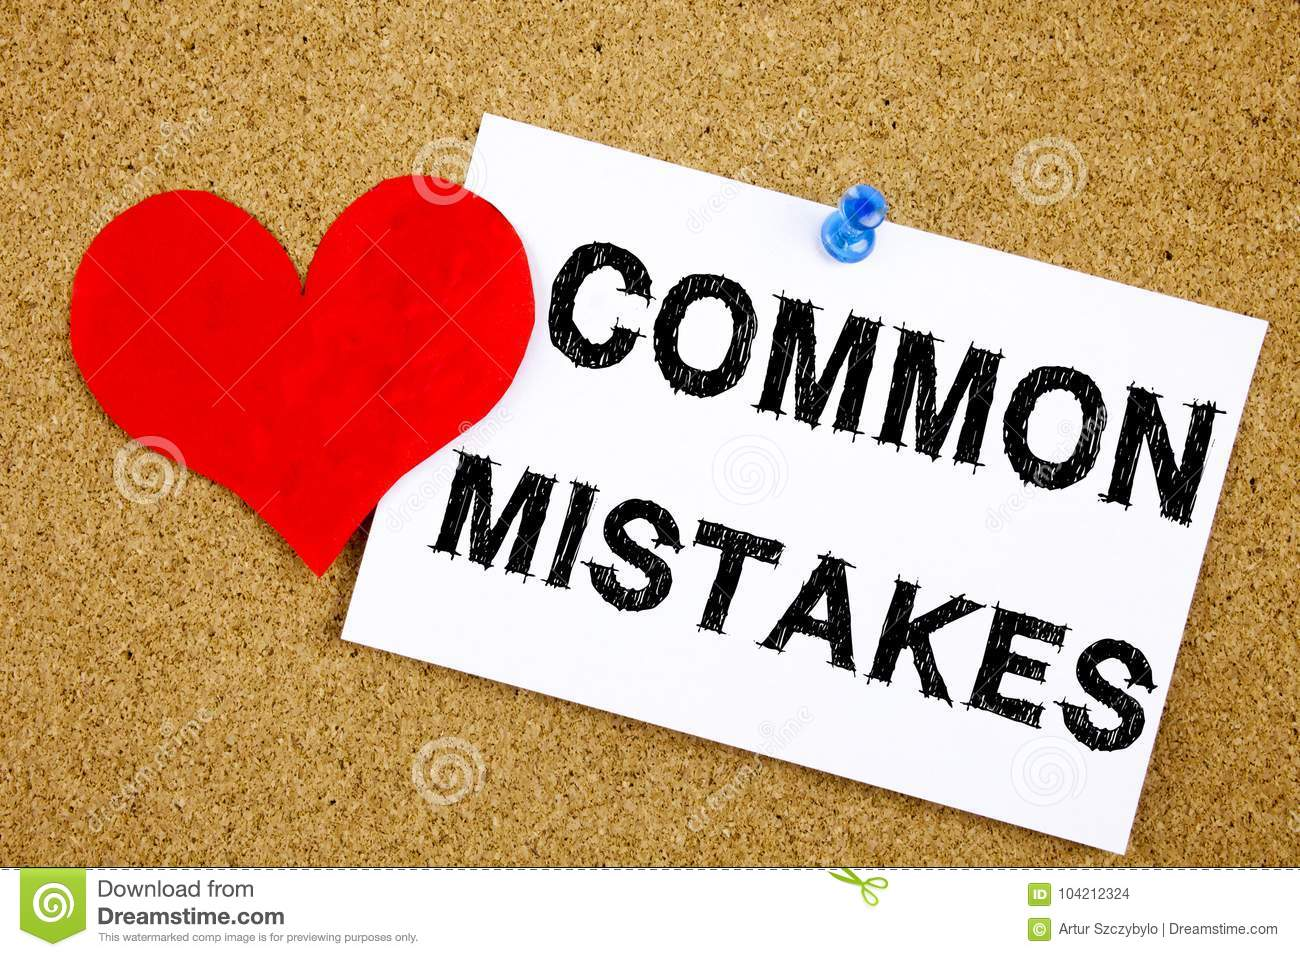 Conceptual hand writing text caption inspiration showing Common Mistakes concept for Common Decision Mistakes and Love written on